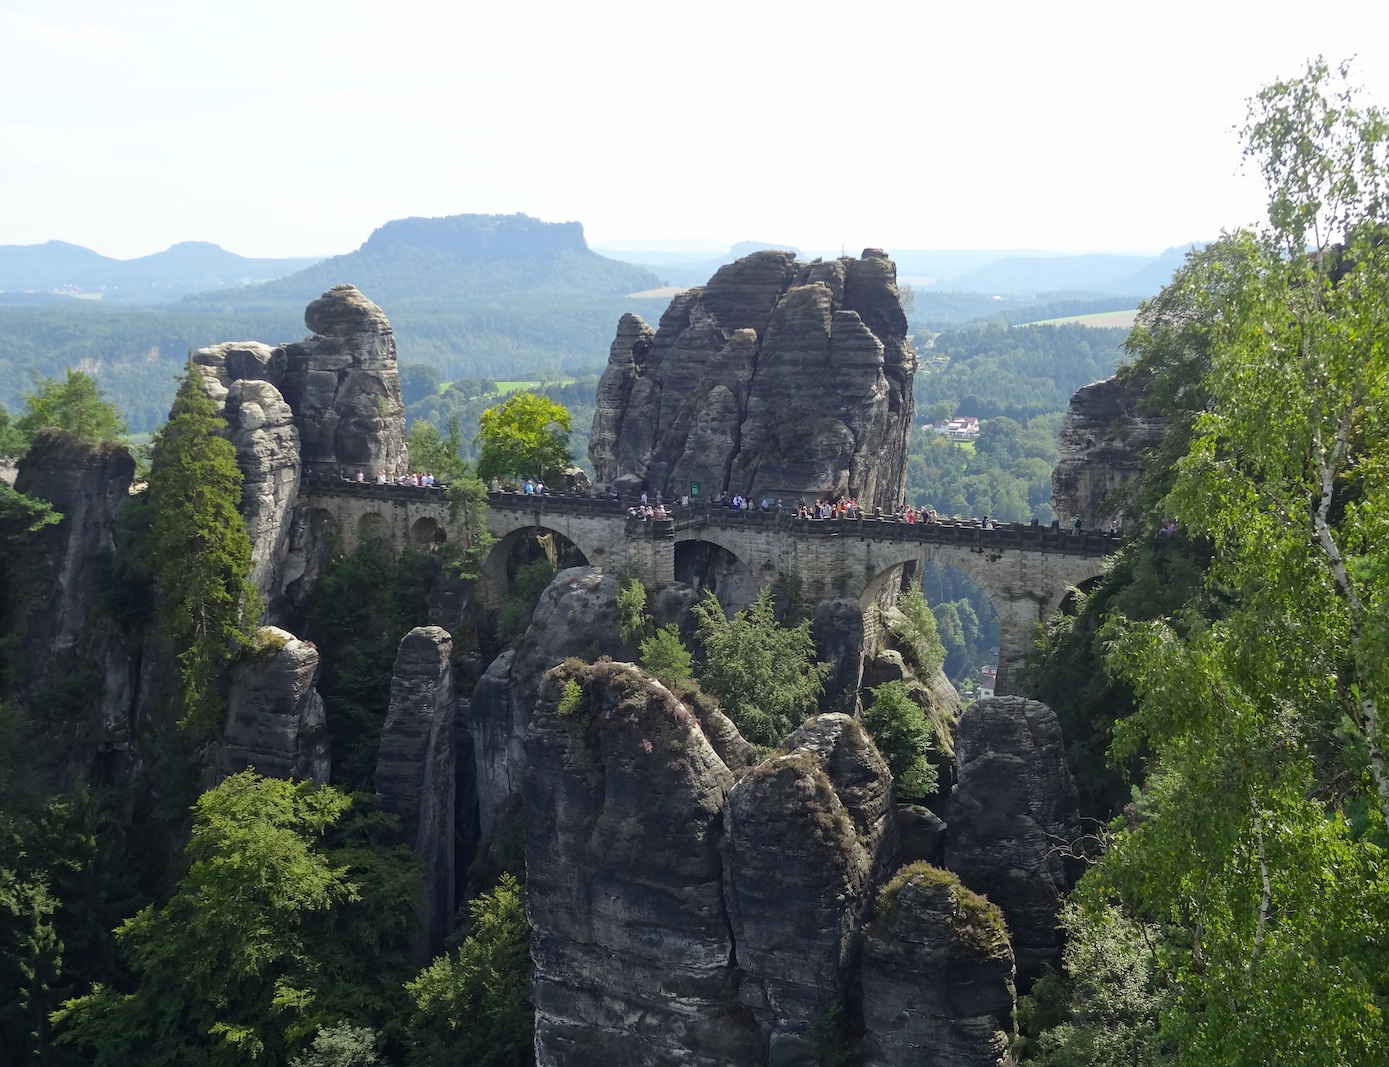 The Bastei